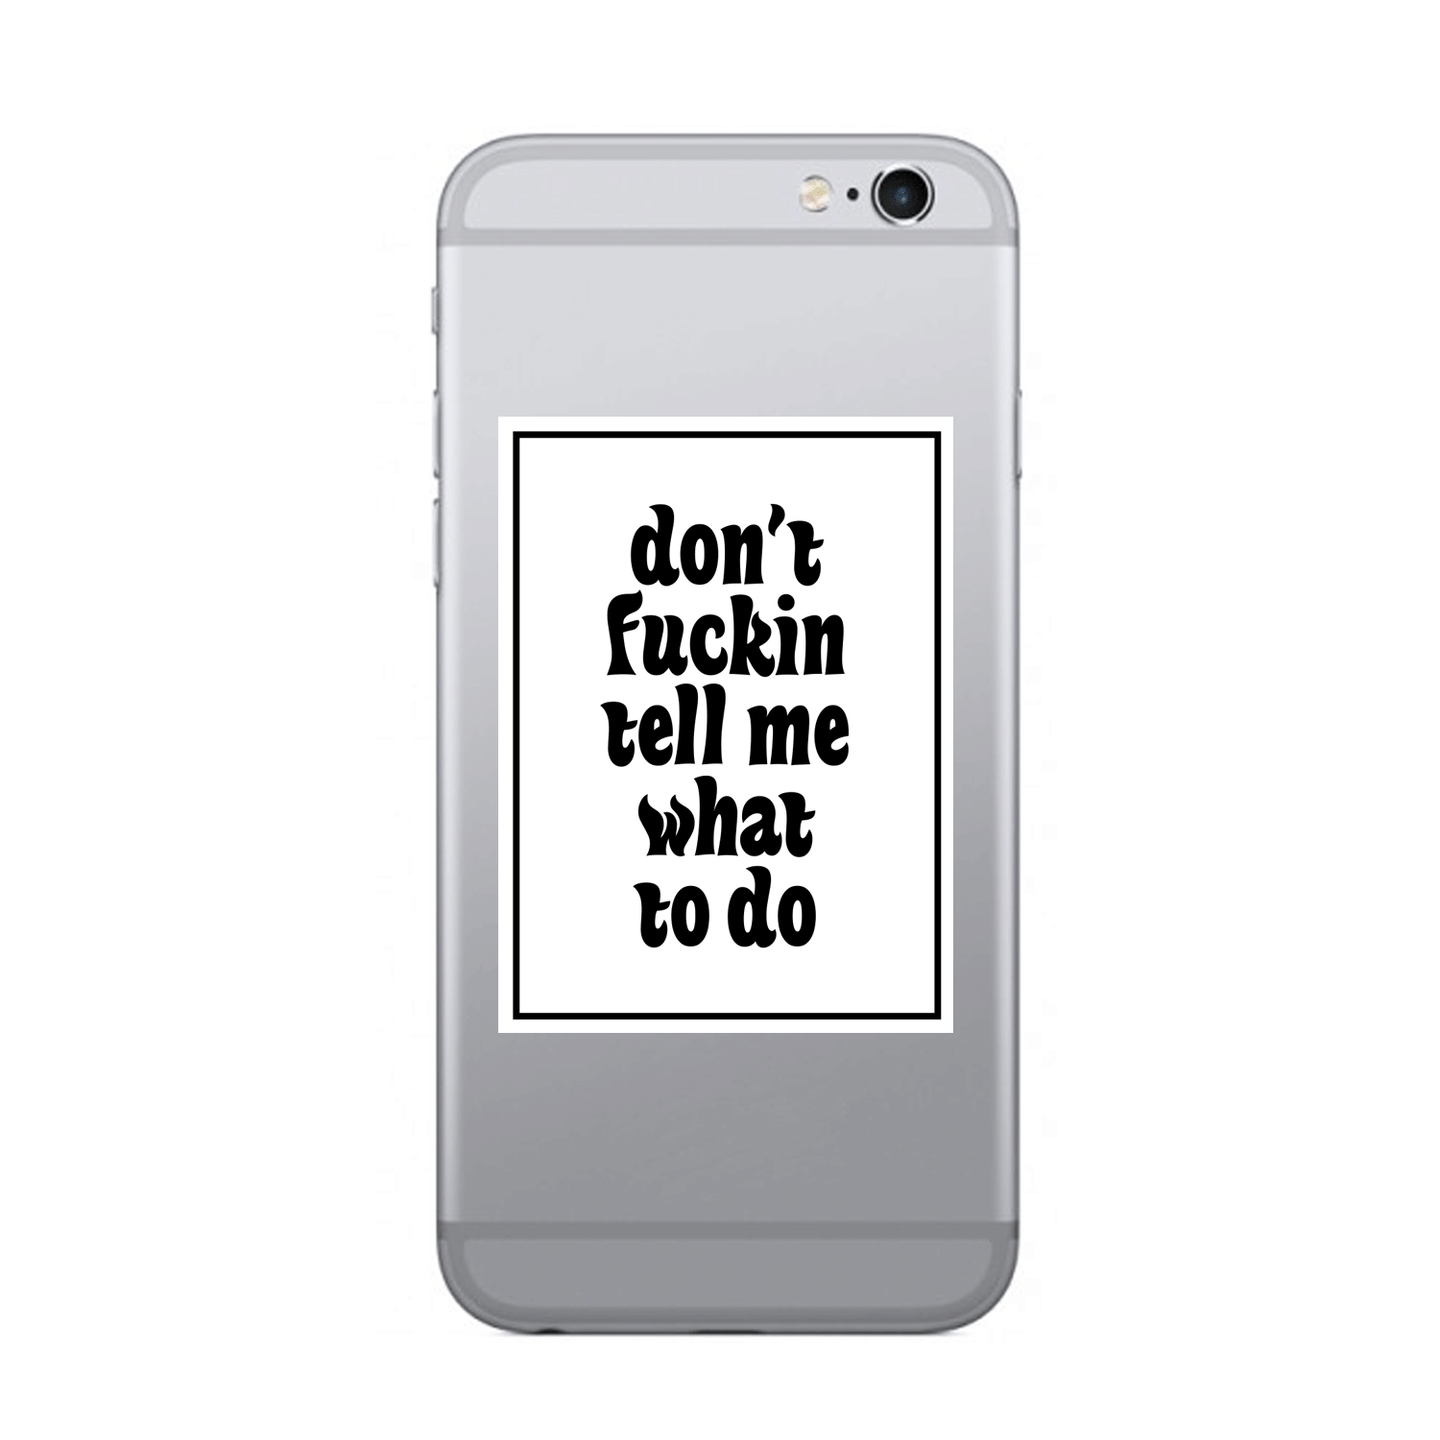 Don't f*ckin tell me what to do - white - SELFIE STICKER